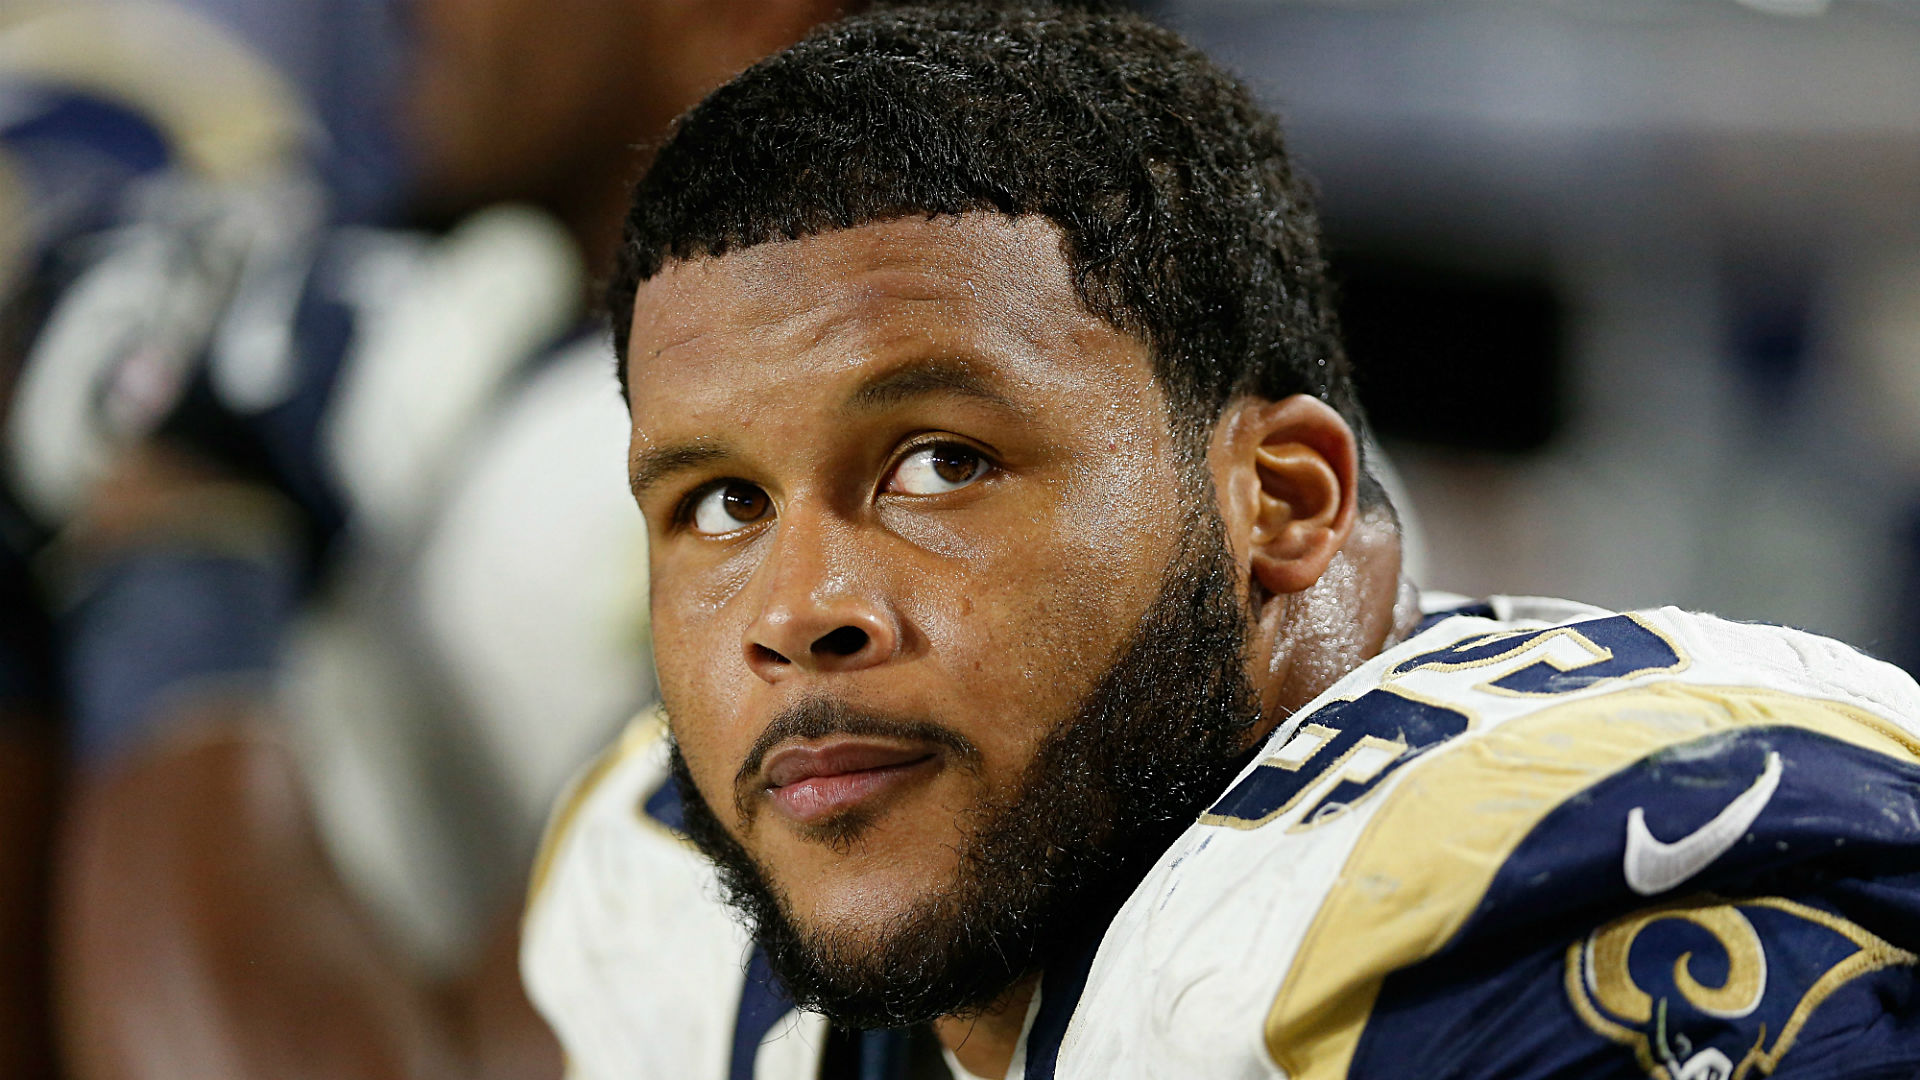 Defensive tackle Aaron Donald could soon sign a new deal with the Los Angeles Rams, according to head coach Sean McVay.